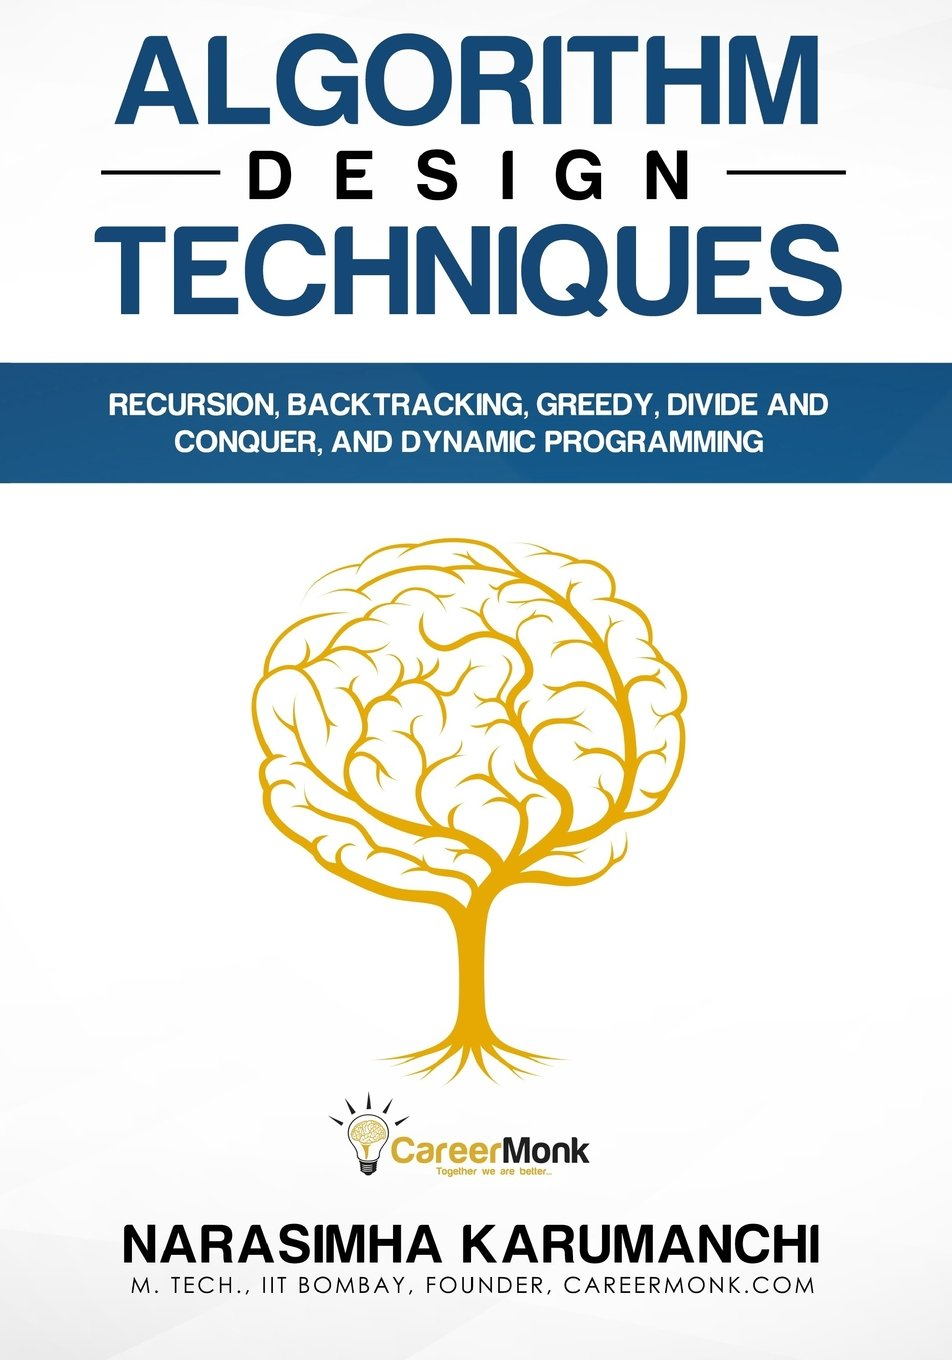 Algorithm Design Techniques: Recursion, Backtracking, Greedy, Divide and  Conquer, and Dynamic Programming: 9788193245255: Computer Science Books @  Amazon. ...